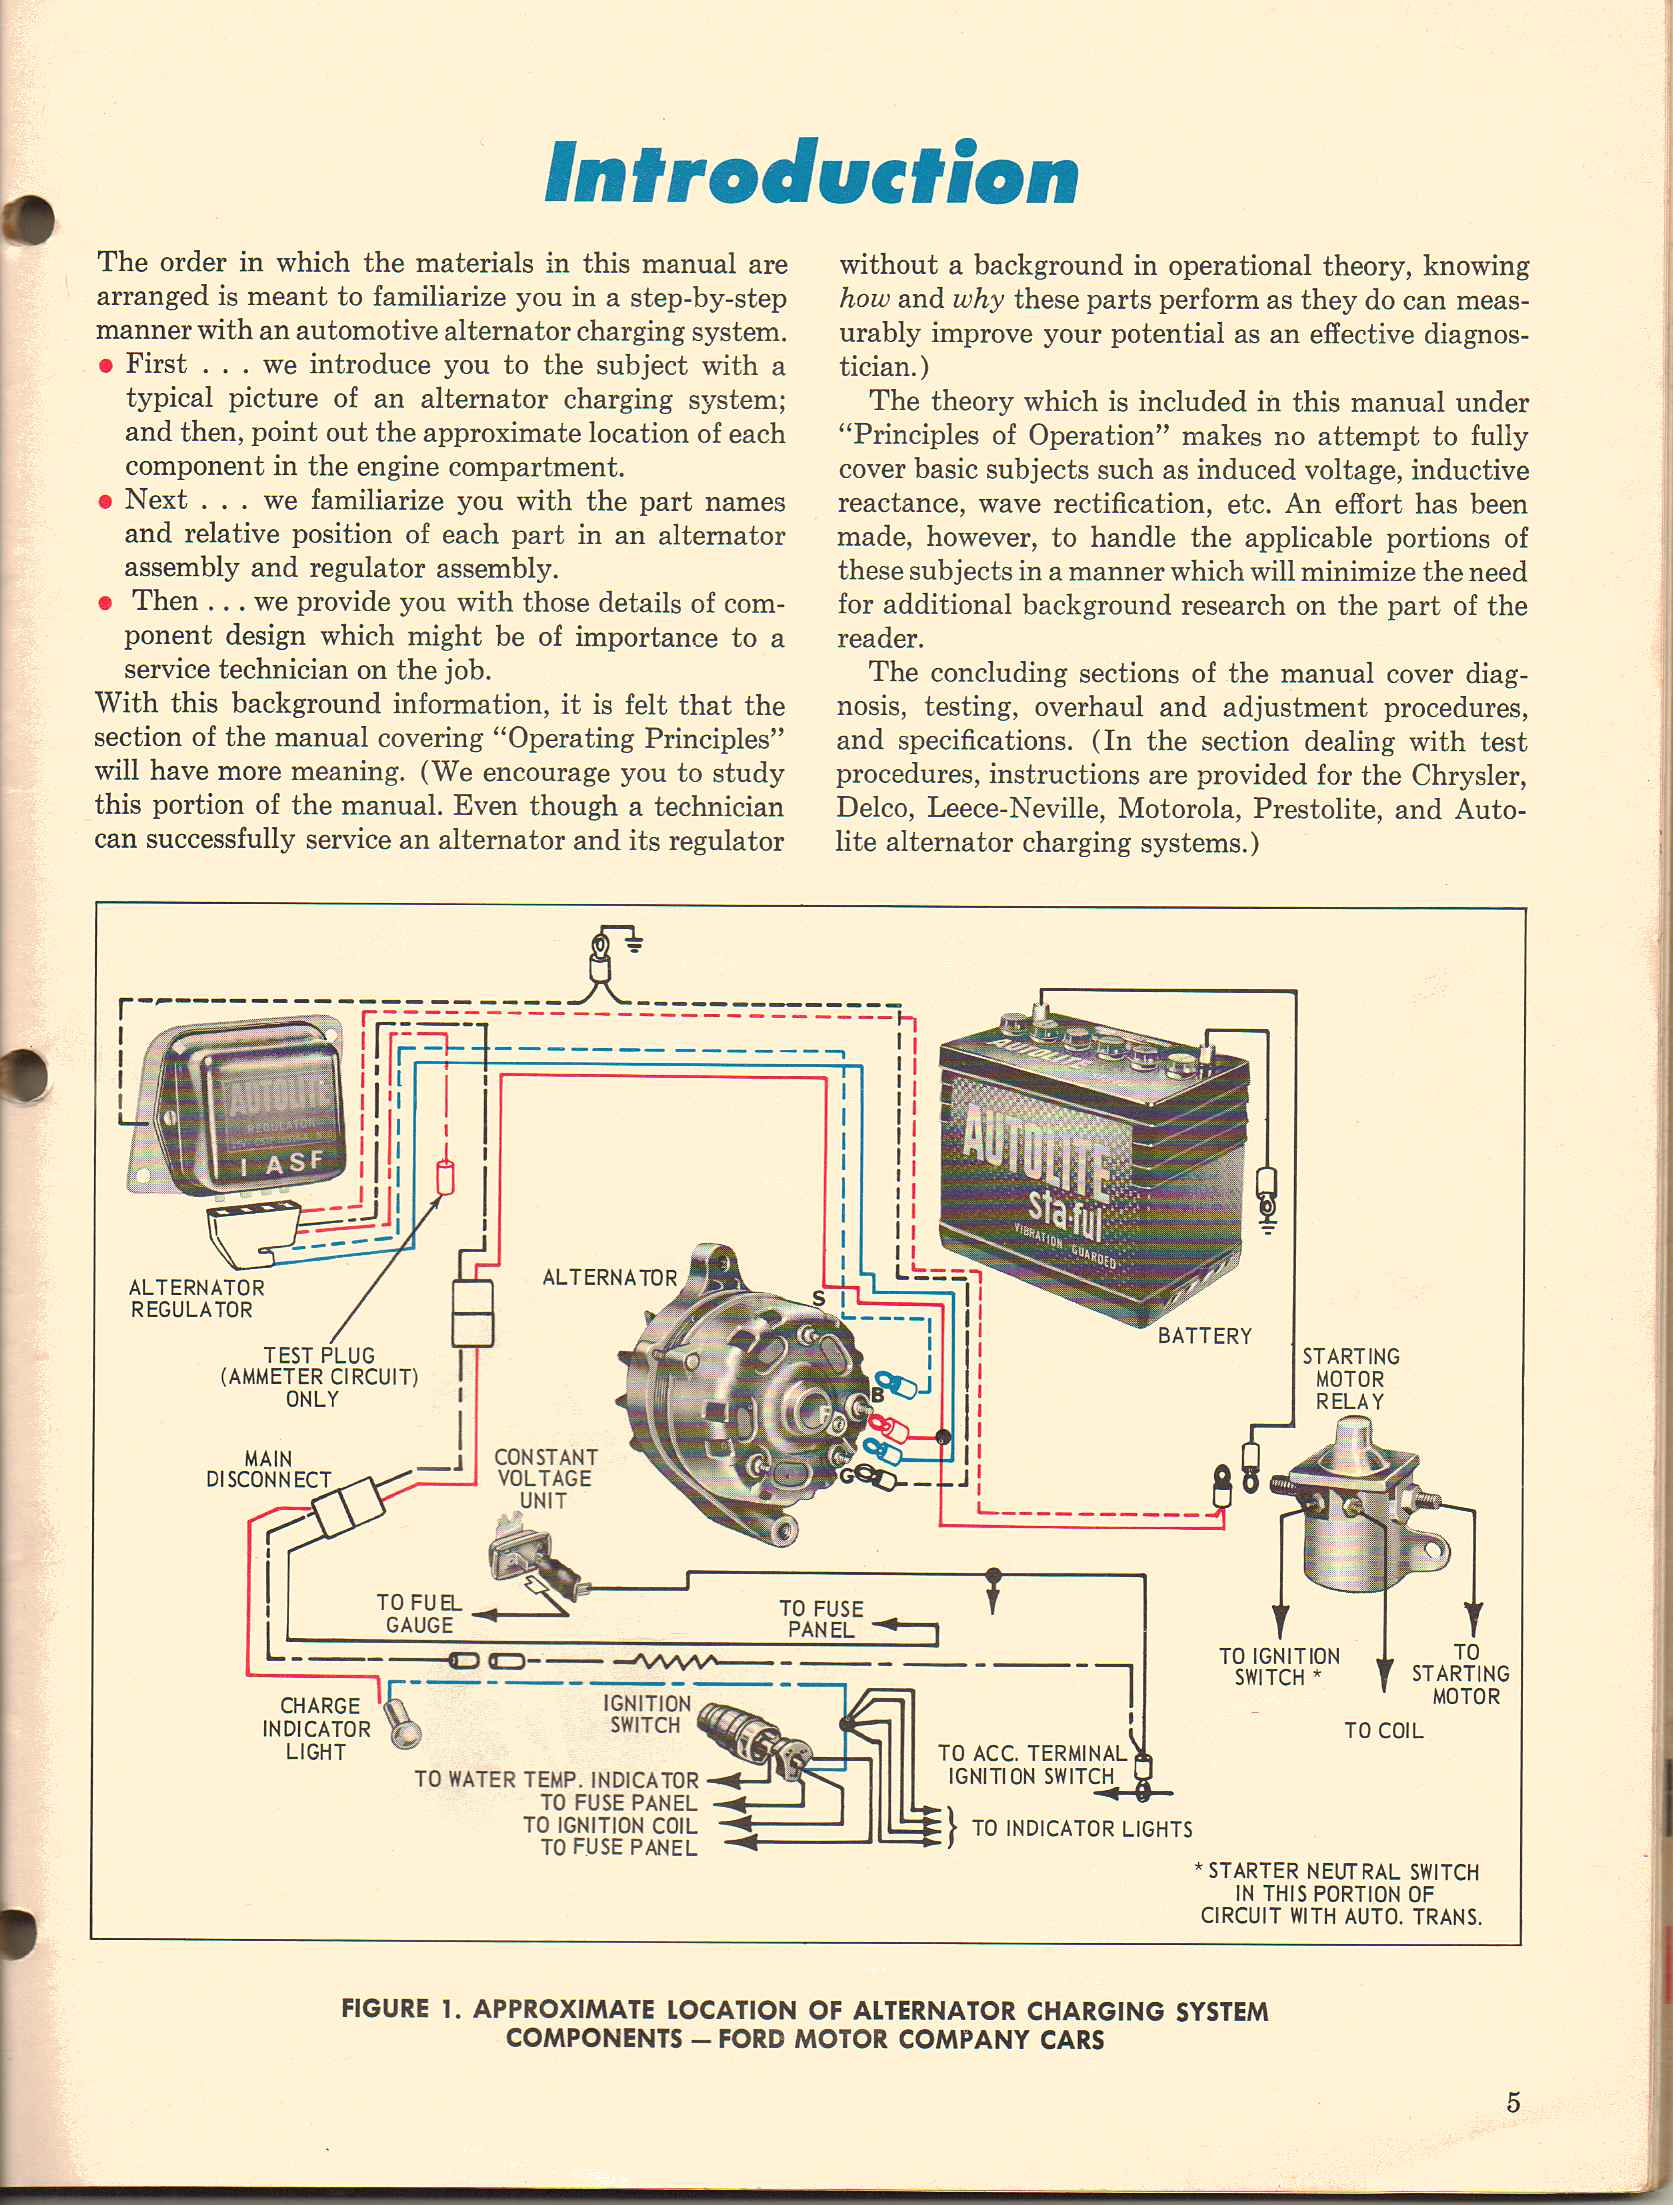 cat diesel generator wiring diagram alternator charging i got a problem with a hand made 6 cyl in line it doesnt alternator charging diagram